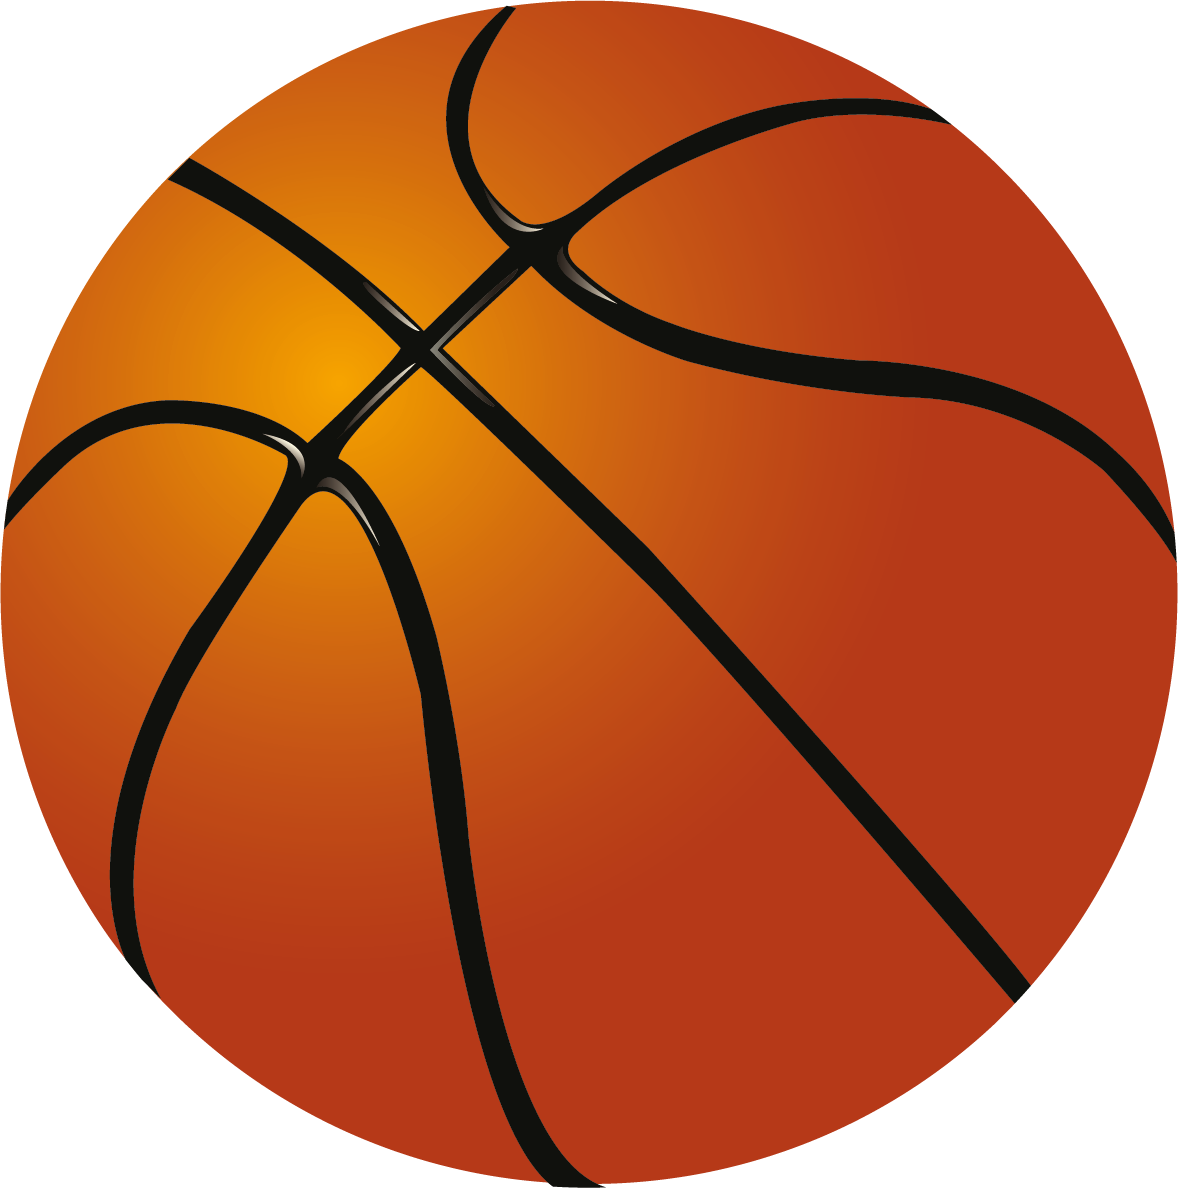 Mauve clipart basketball Images with png Ball Group